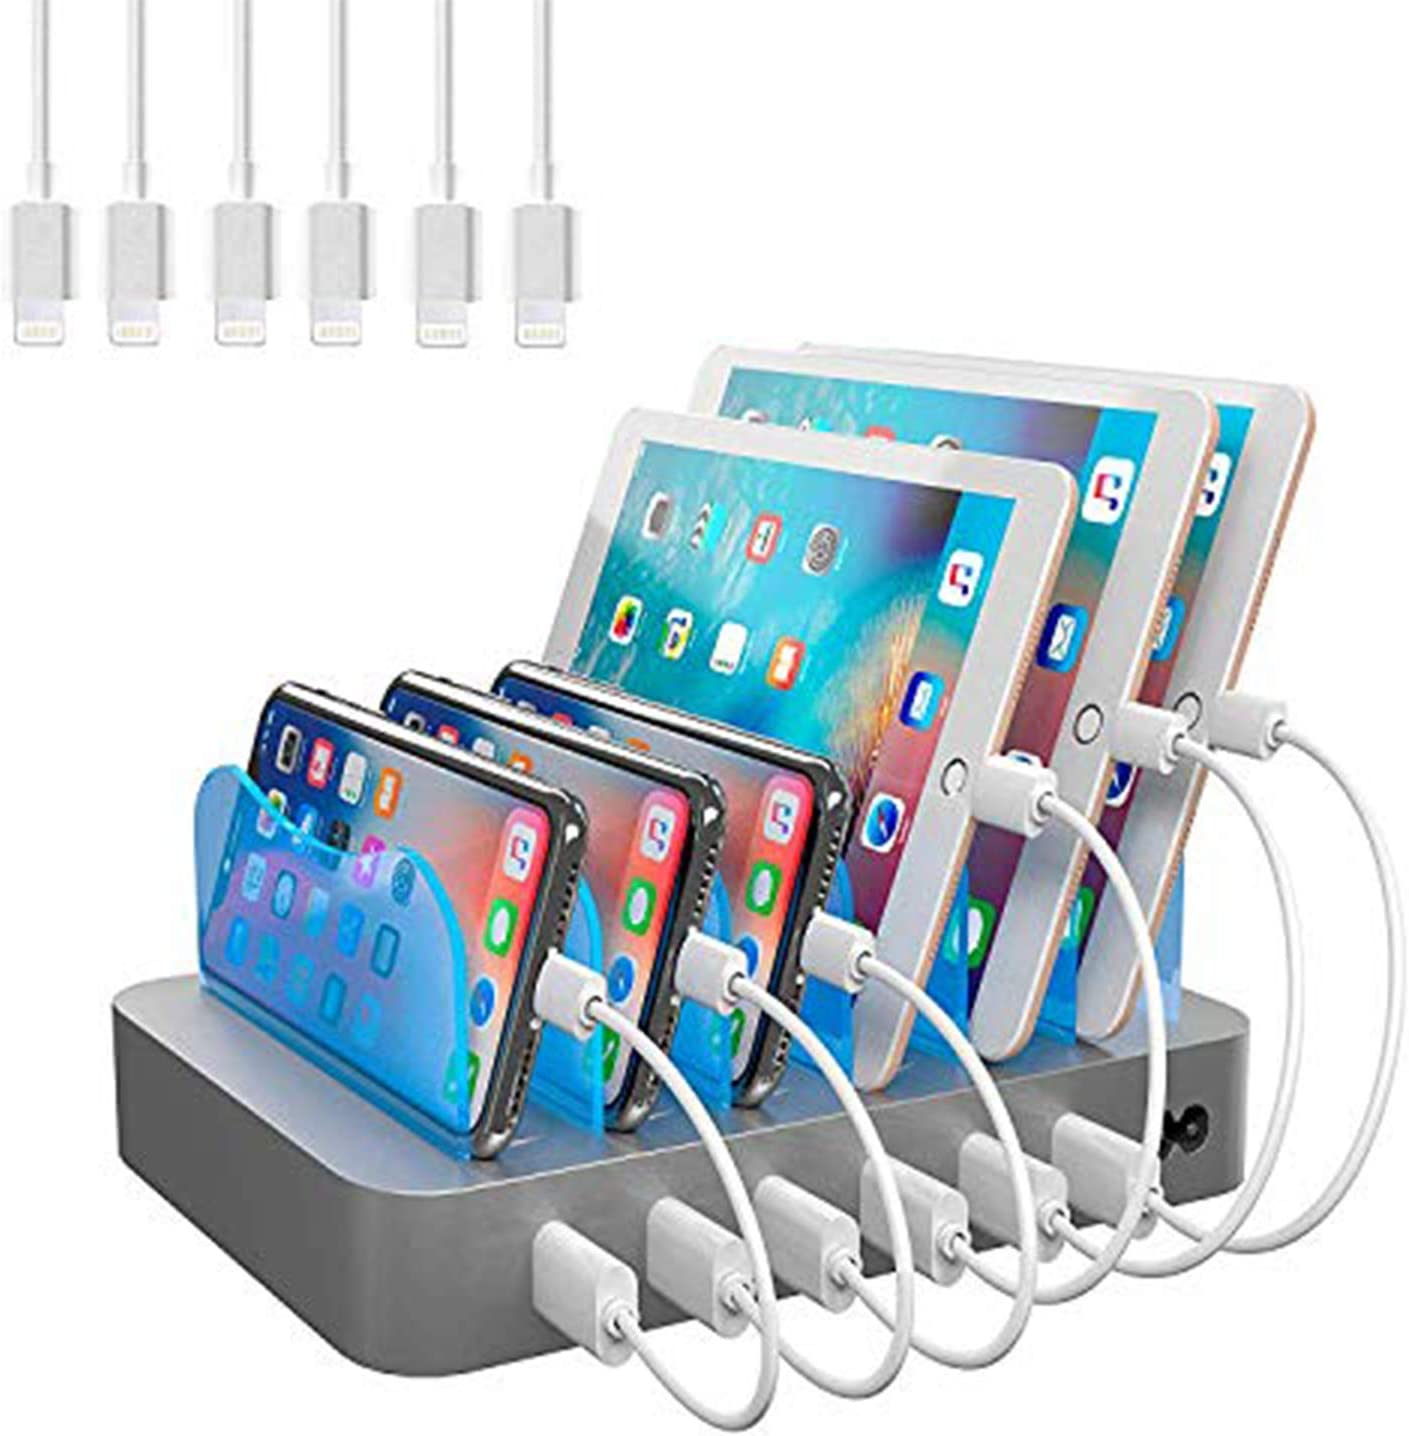 Hercules Tuff Charging Station for Multiple Devices (White) - 6 USB Fast Ports - 6 Short USB Lightning Cables Included for Cell Phones, Smart Phones, Tablets, and Other Electronics